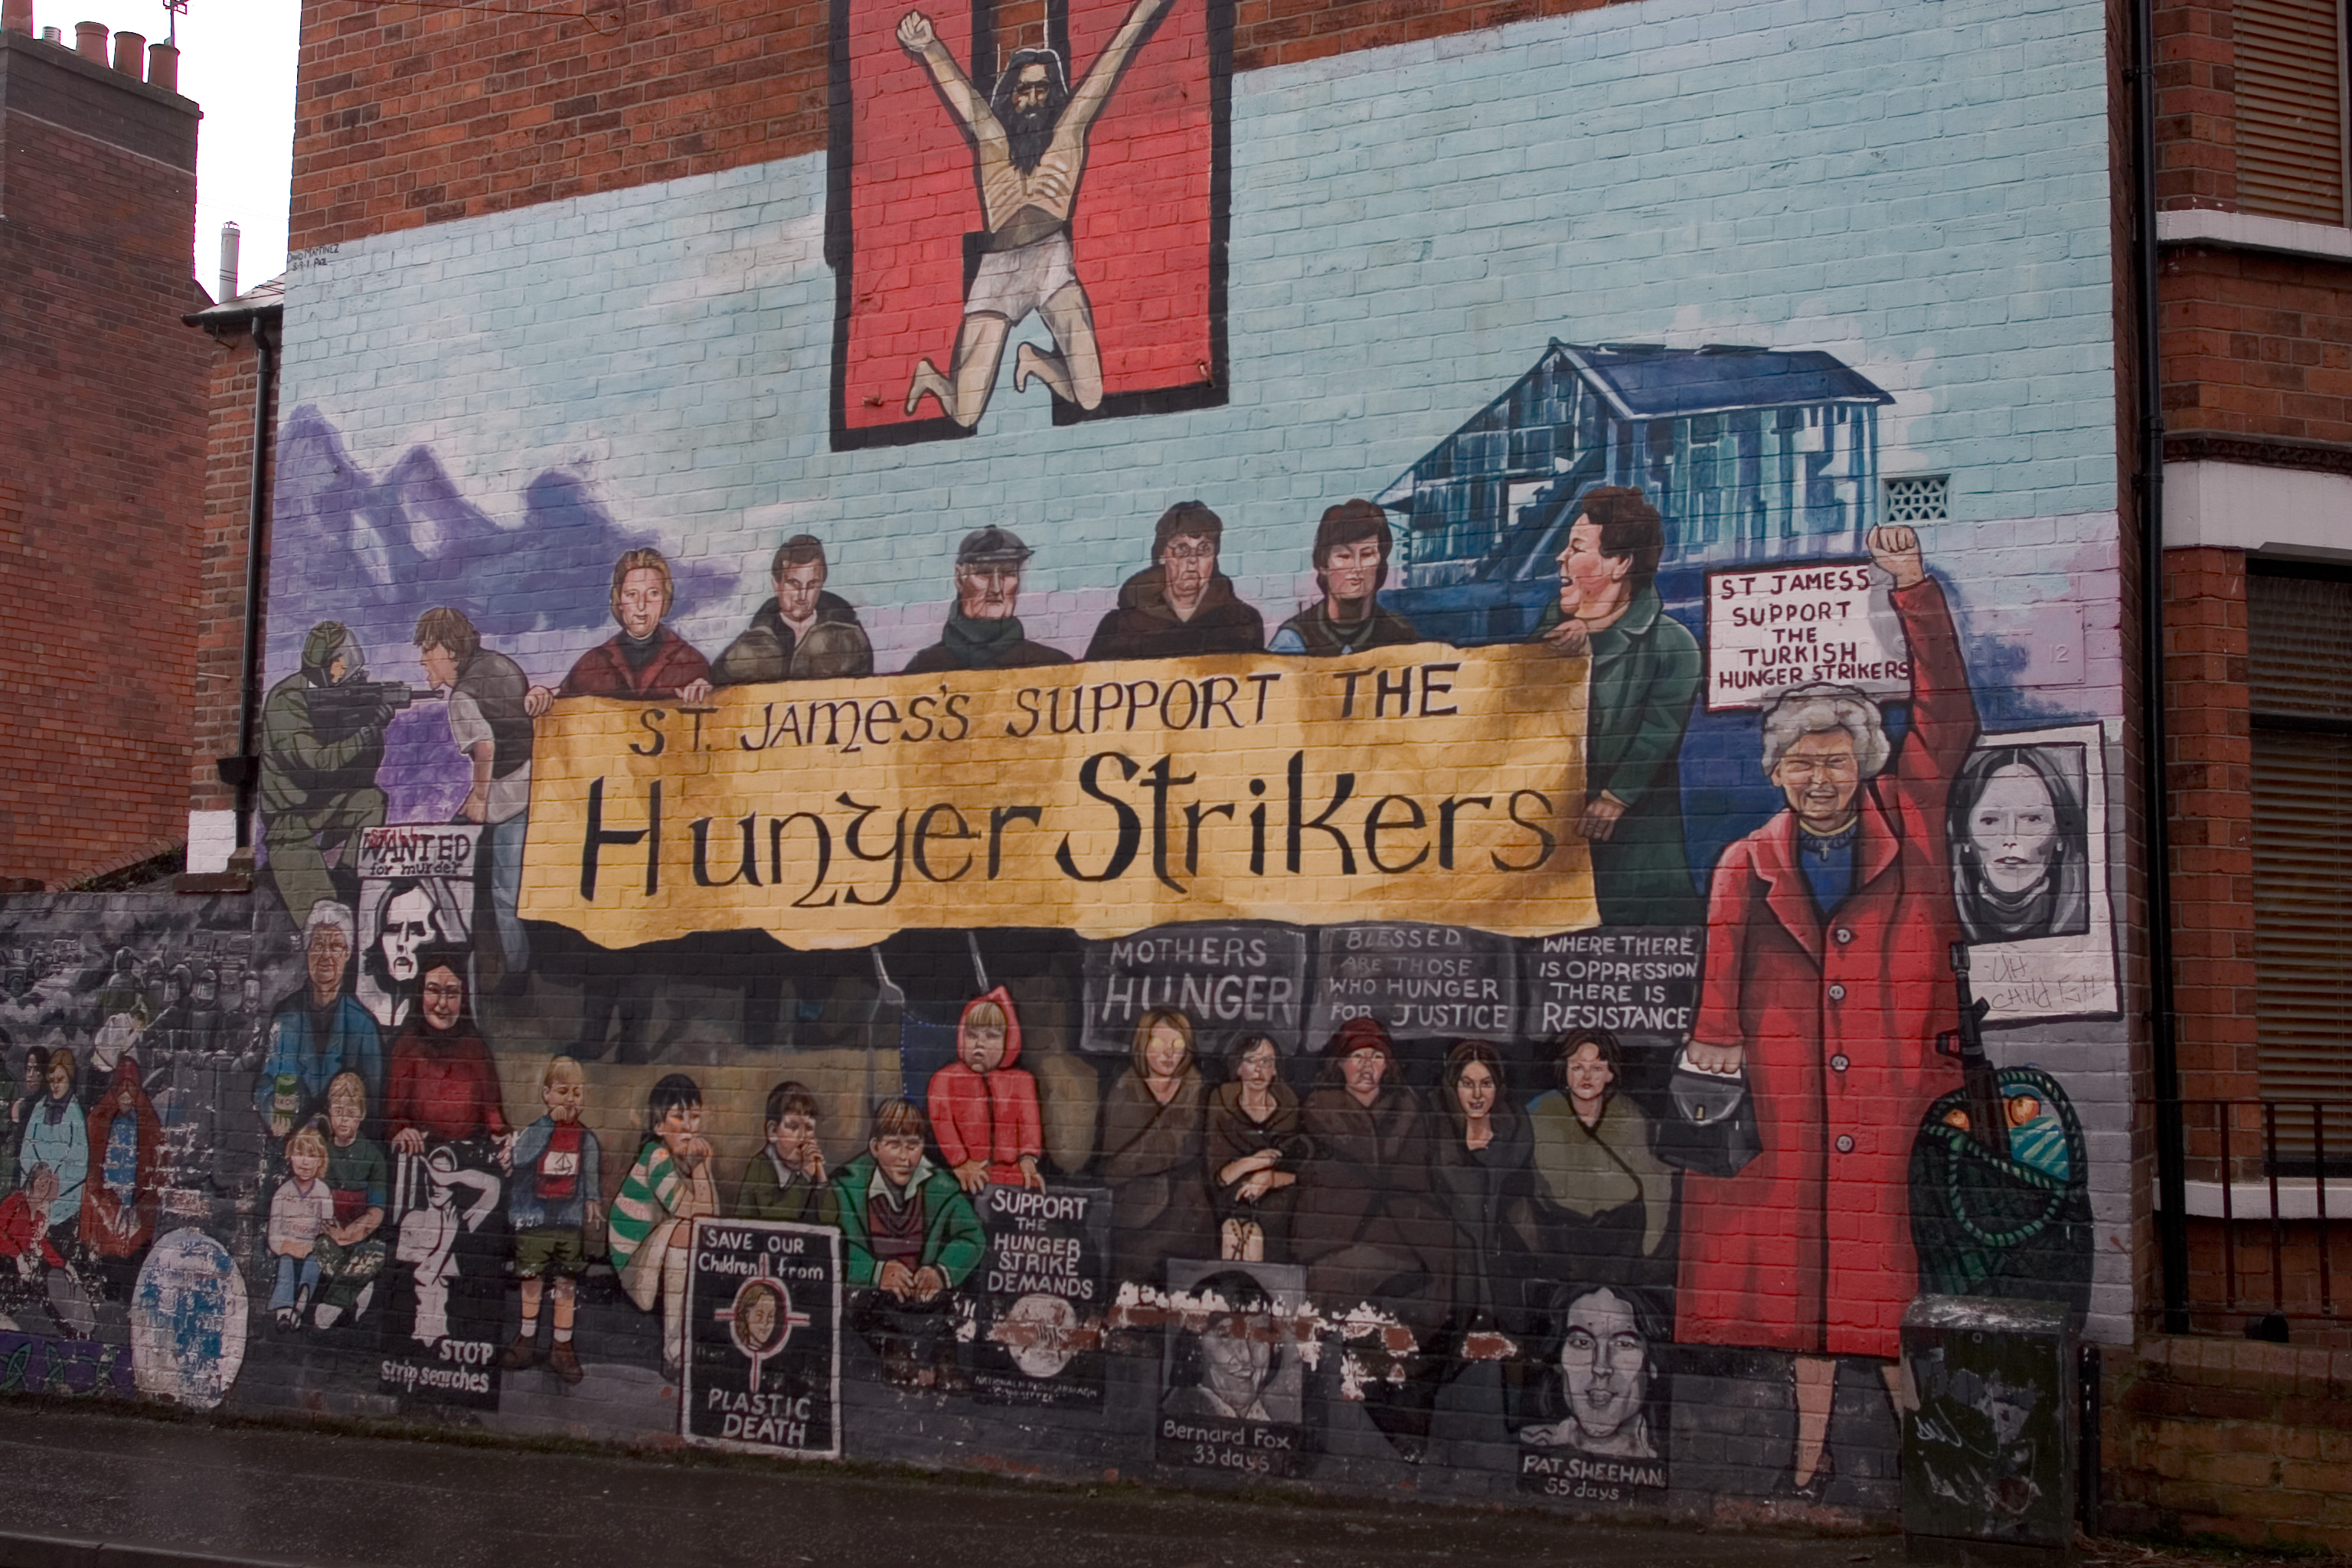 File St James S Support The Hunger Strikers Jpg